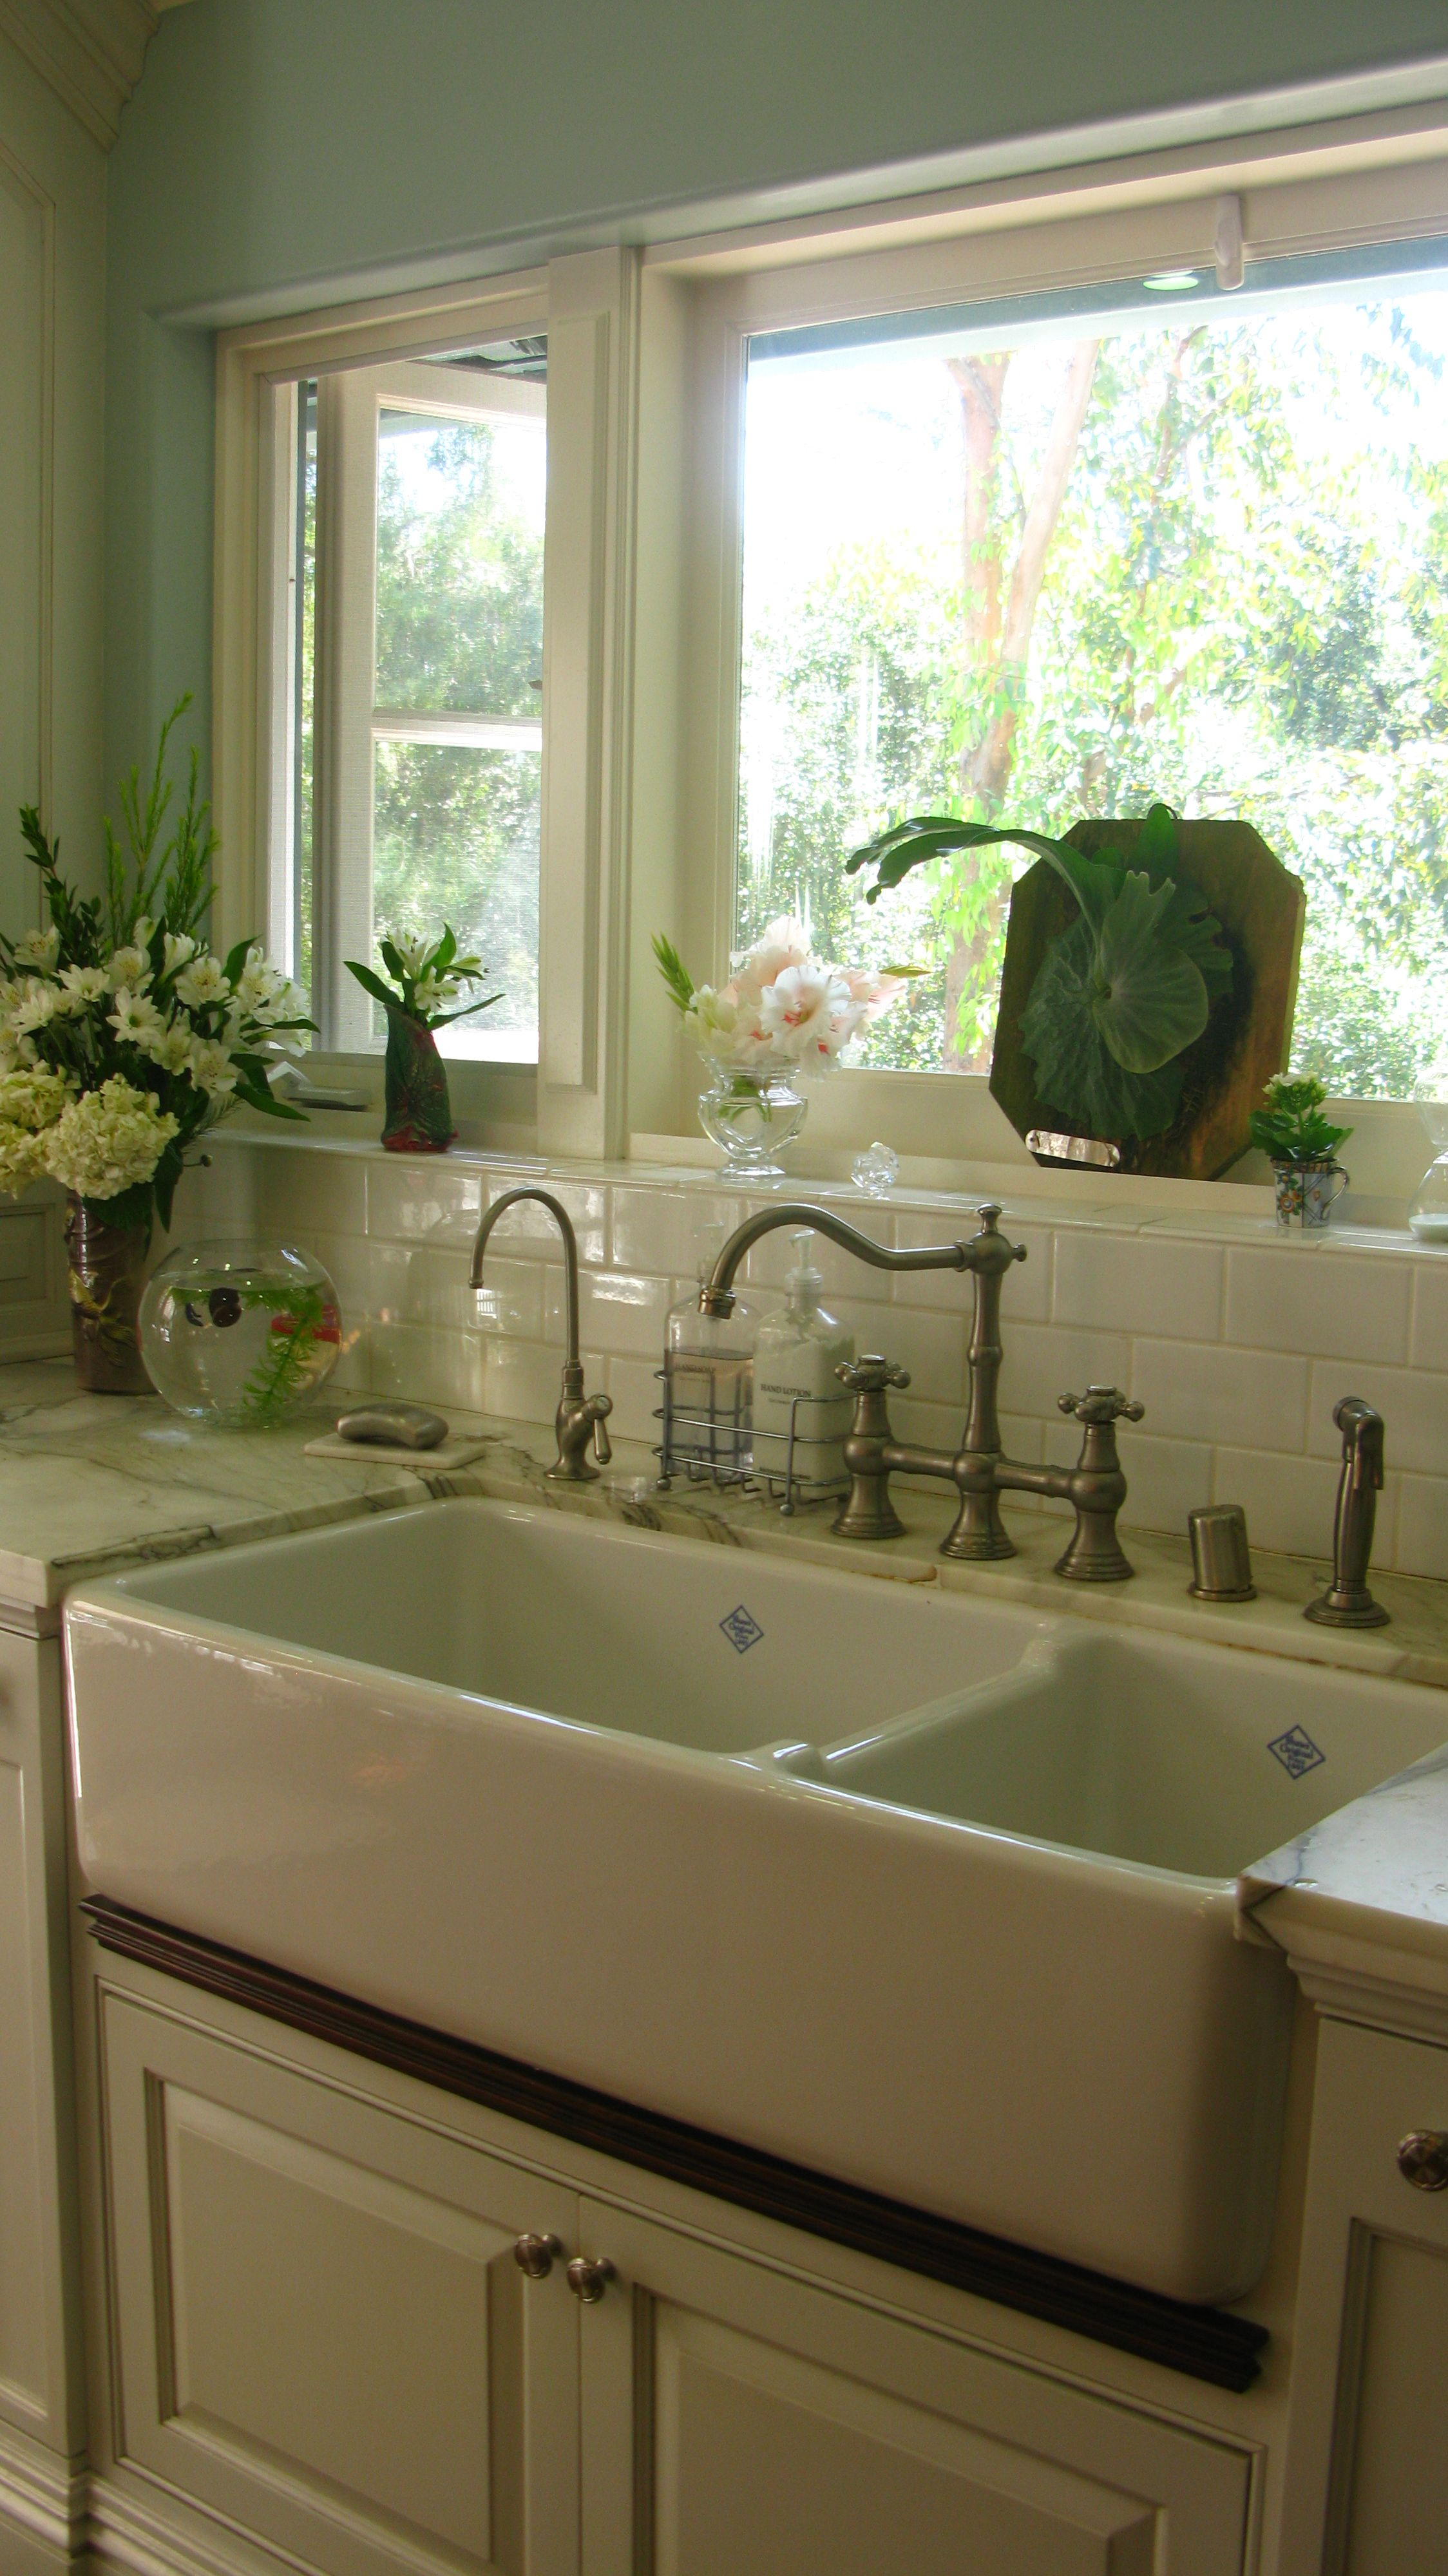 LOVE that double sink and polished hardward Kitchens I